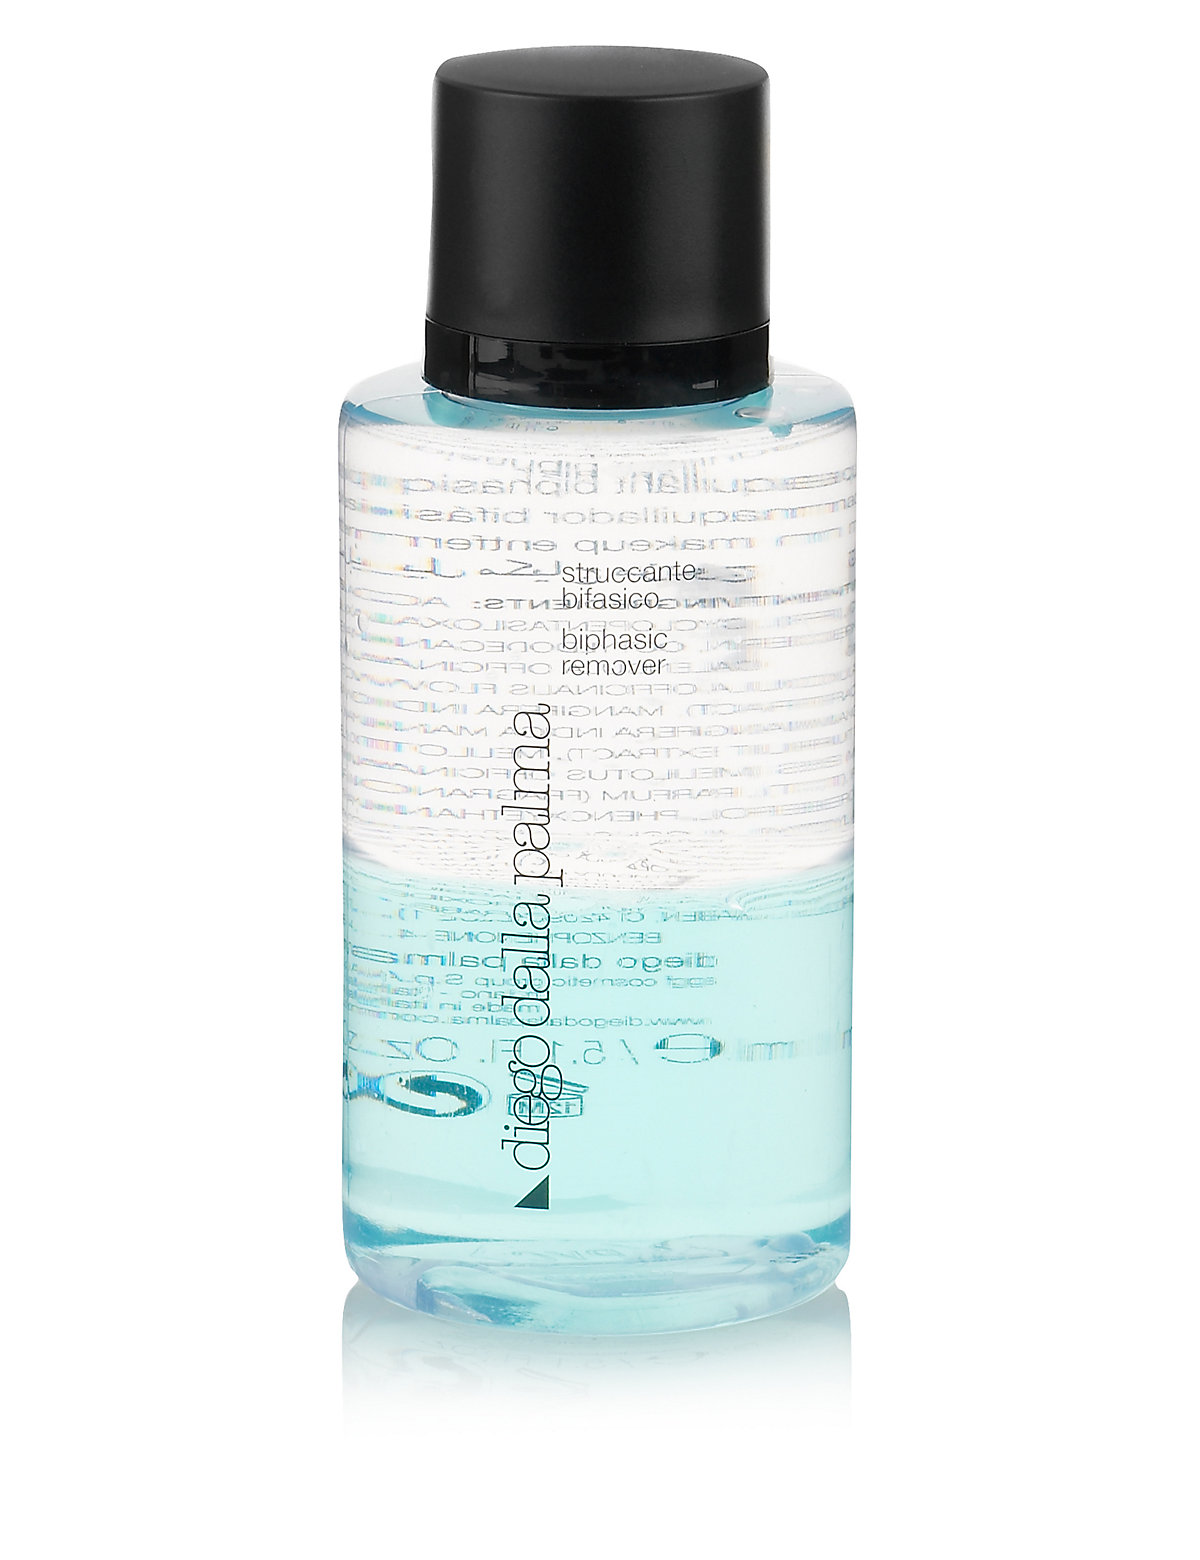 diego dalla palma Biphasic Remover 150ml